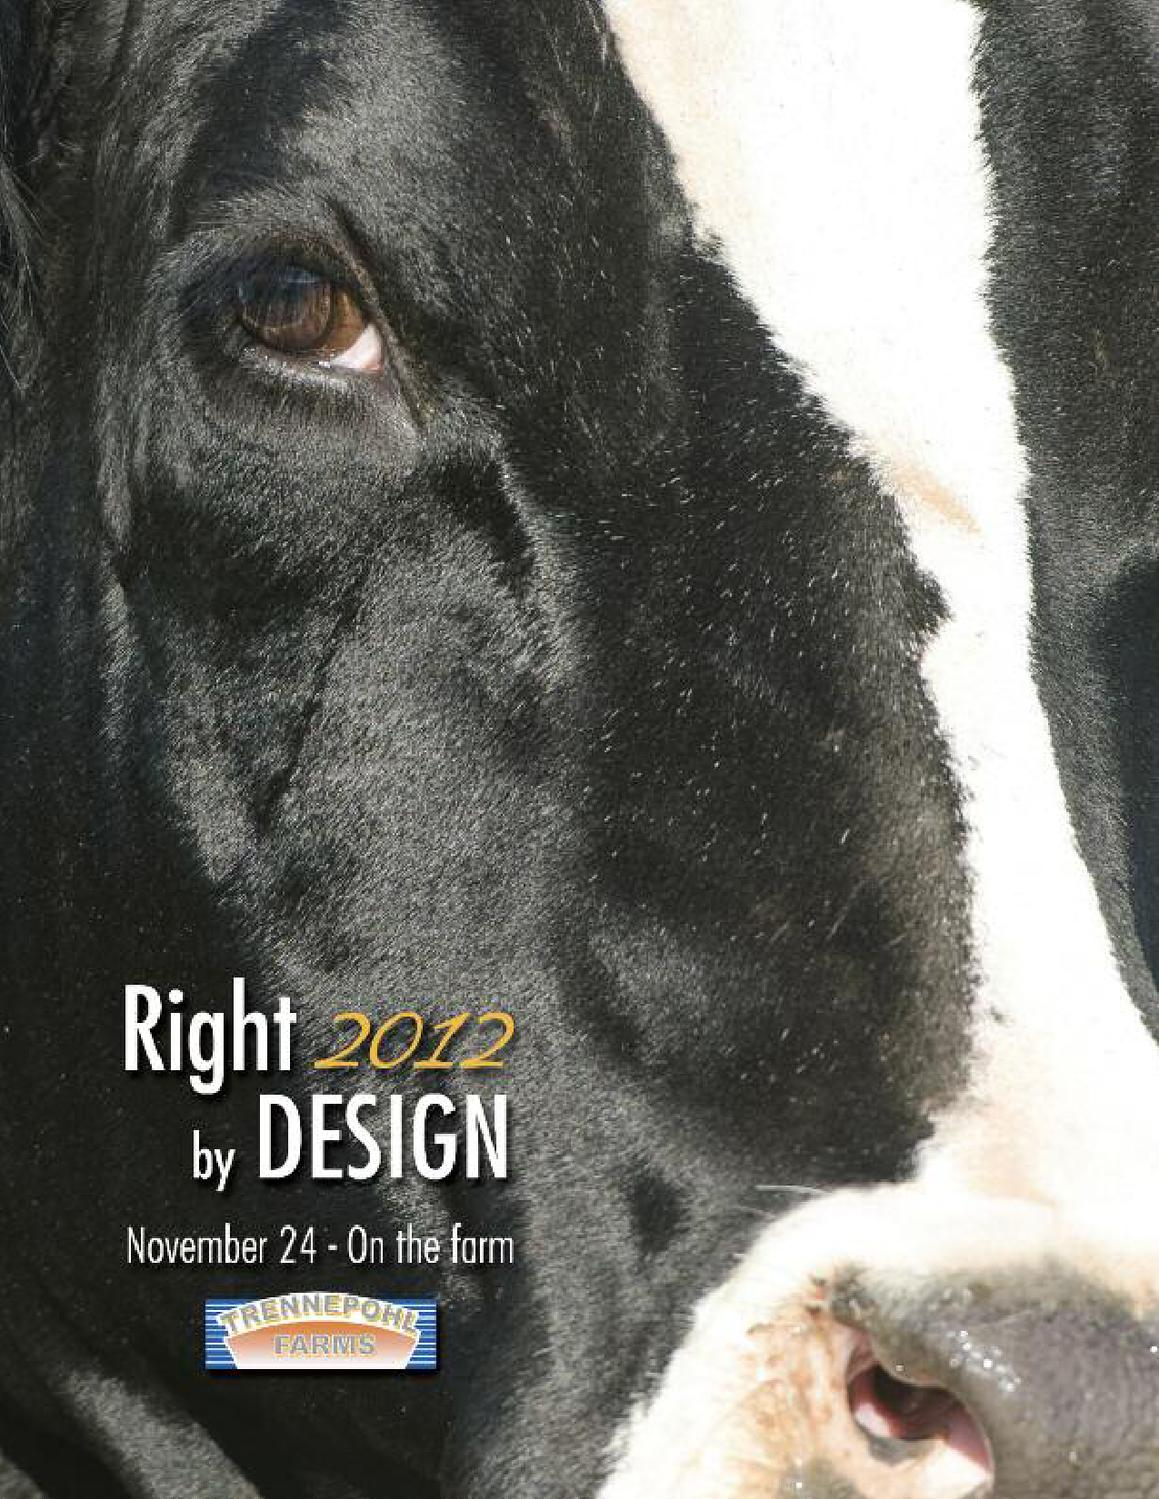 Trennepohl farms right by design sale by craig reiter   issuu